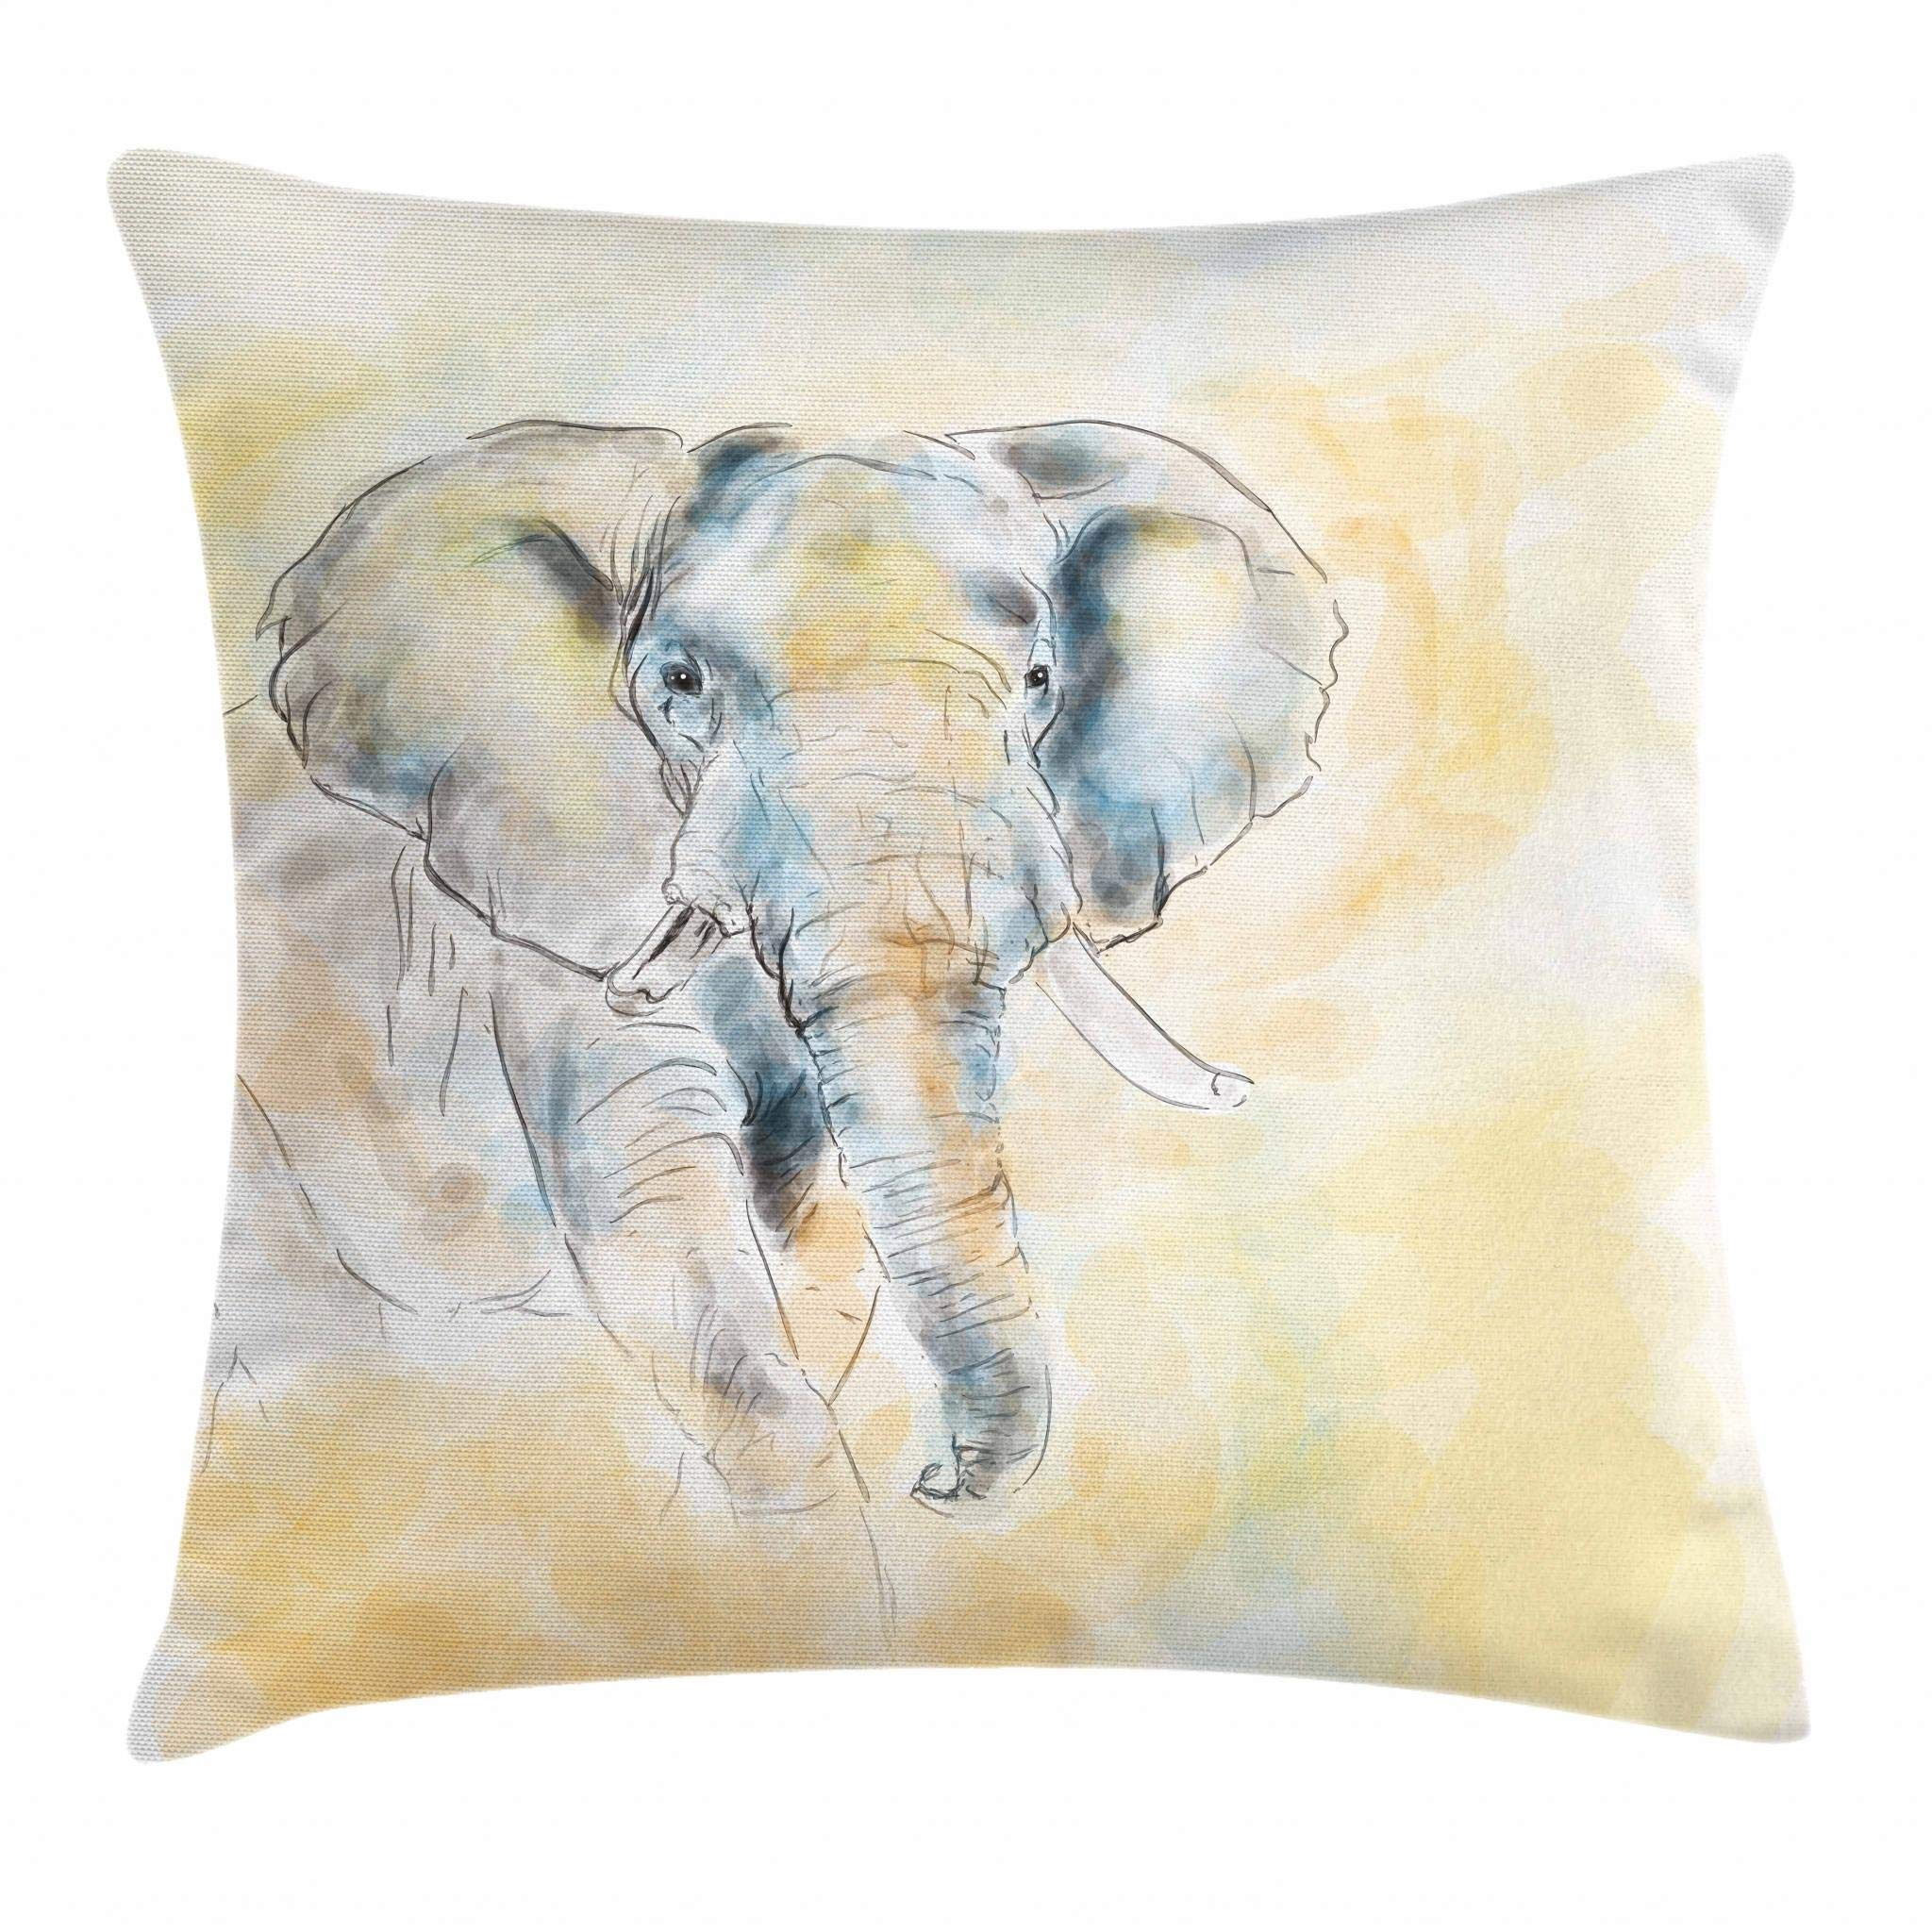 Ambesonne Elephant Throw Pillow Cushion Cover, Elephant Watercolor Style Illustration Wild Creature Safari Exotic Wildlife Theme, Decorative Square Accent Pillow Case, 20'' X 20'', Cream Grey by Ambesonne